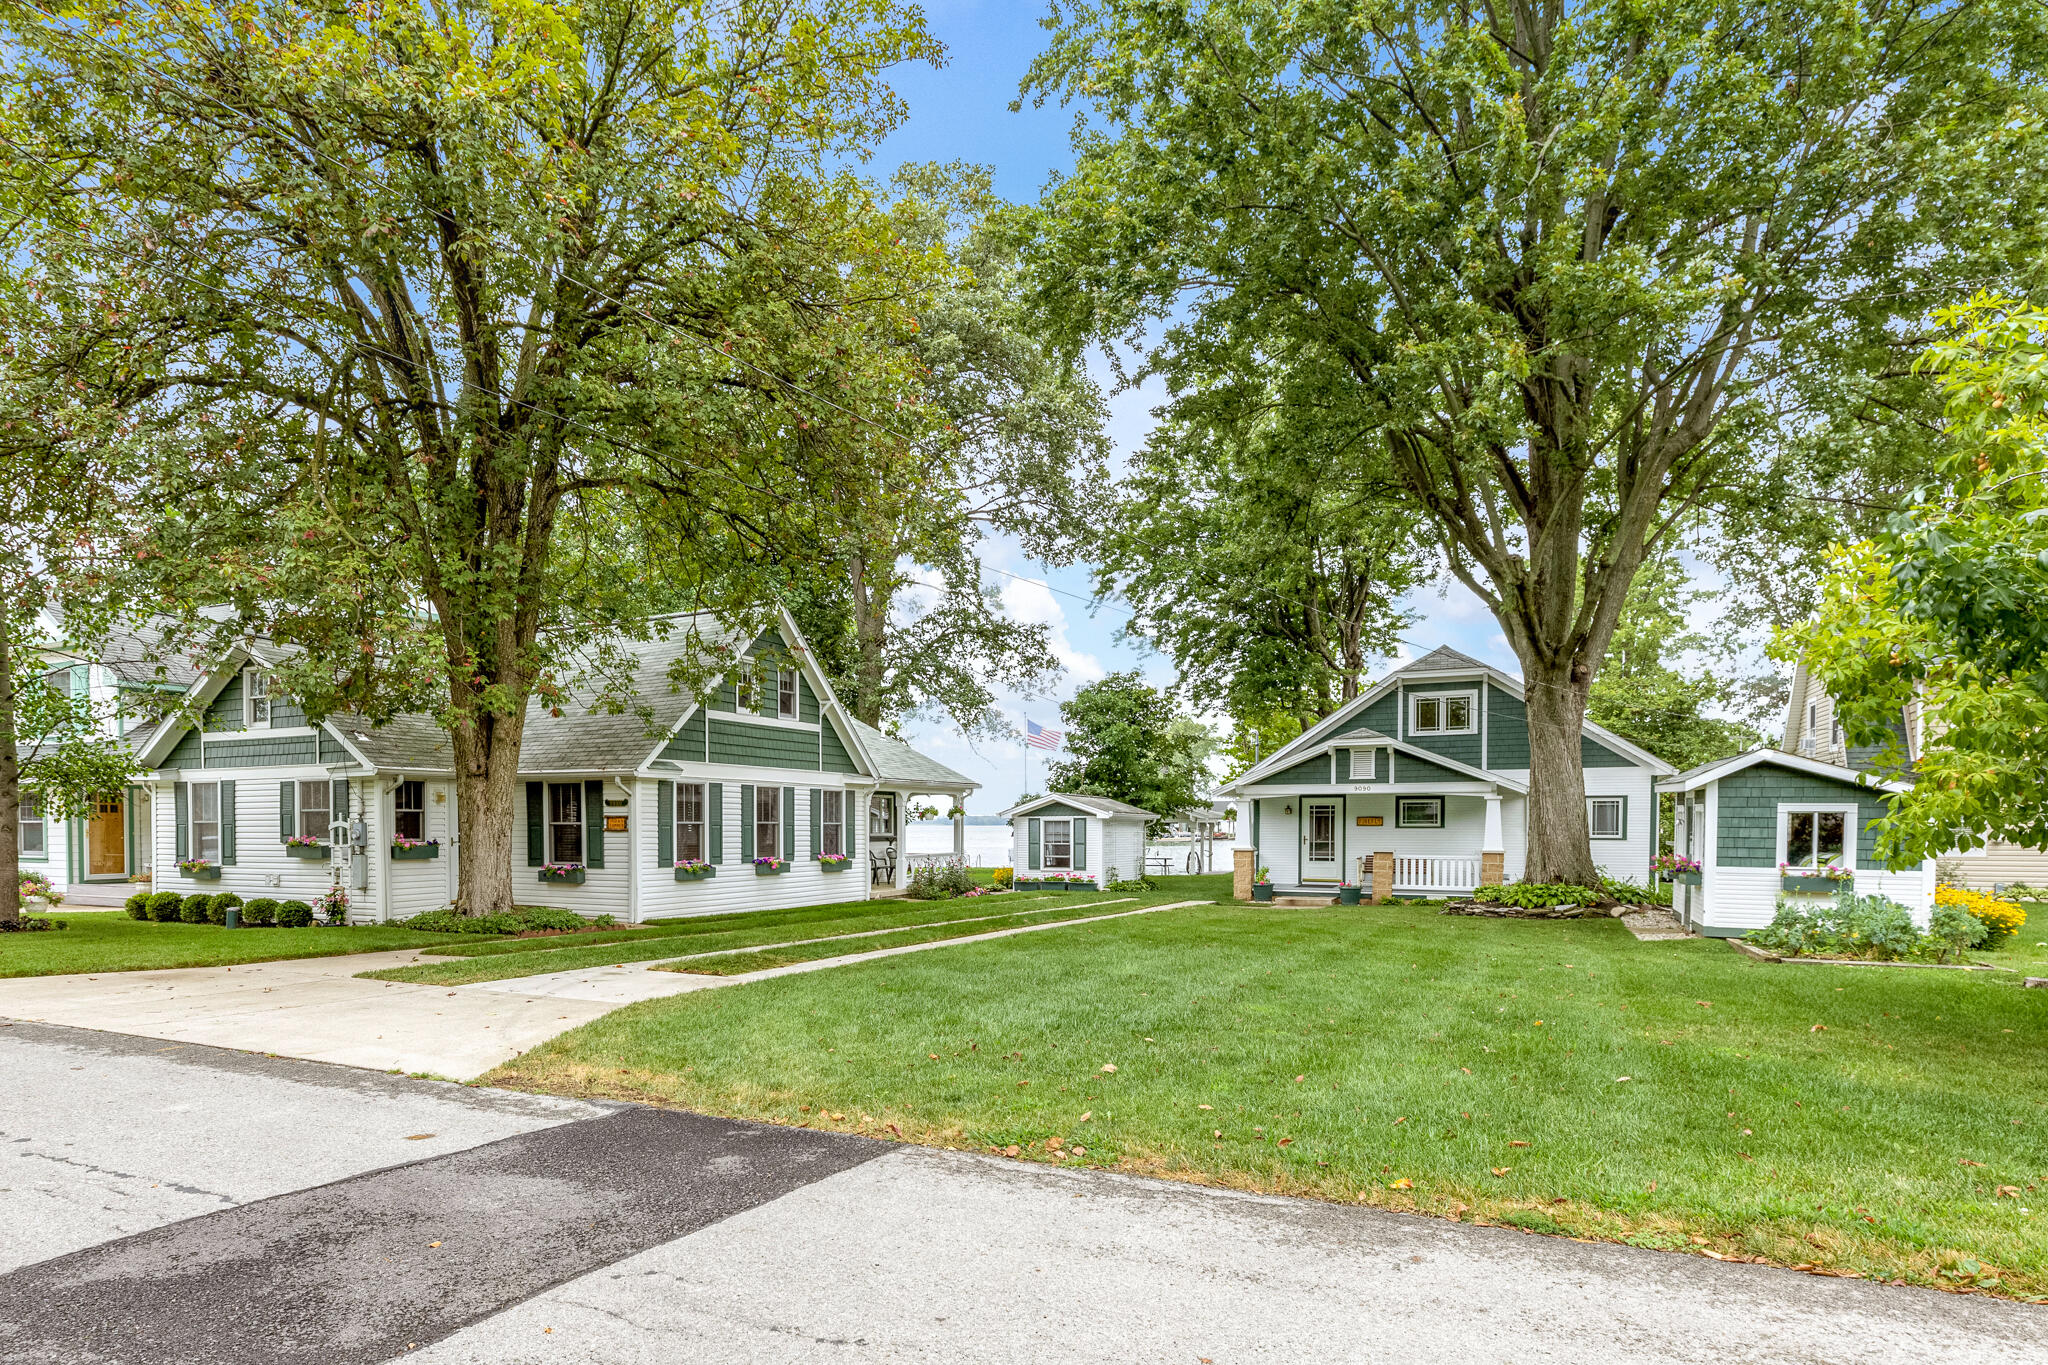 9100 Park St Lakeview, OH